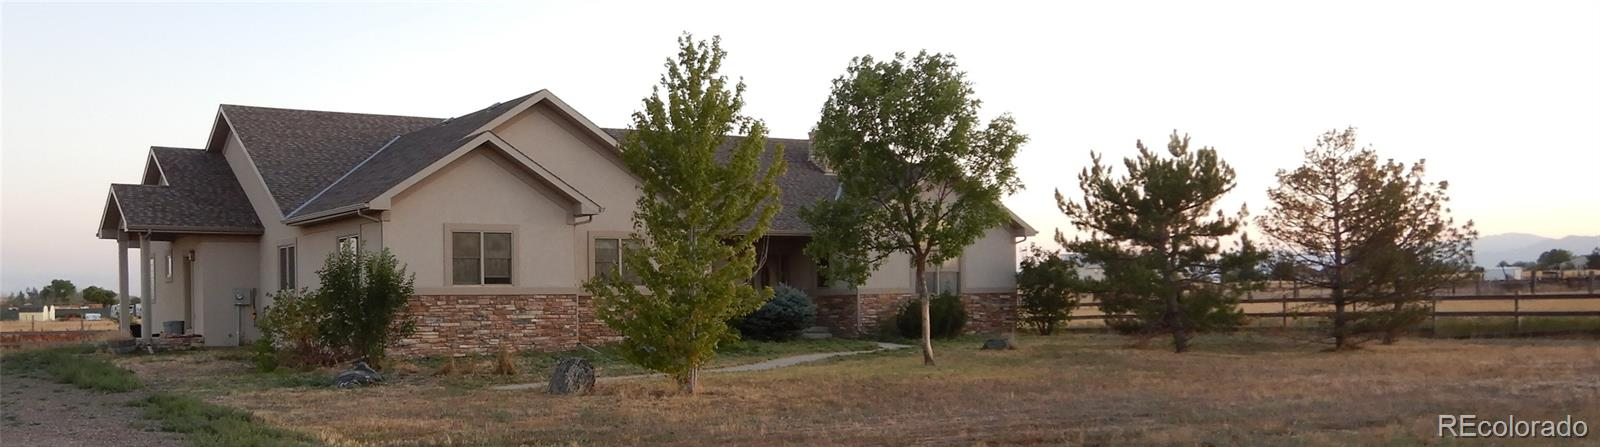 2904 County Road 12 Property Photo - Erie, CO real estate listing